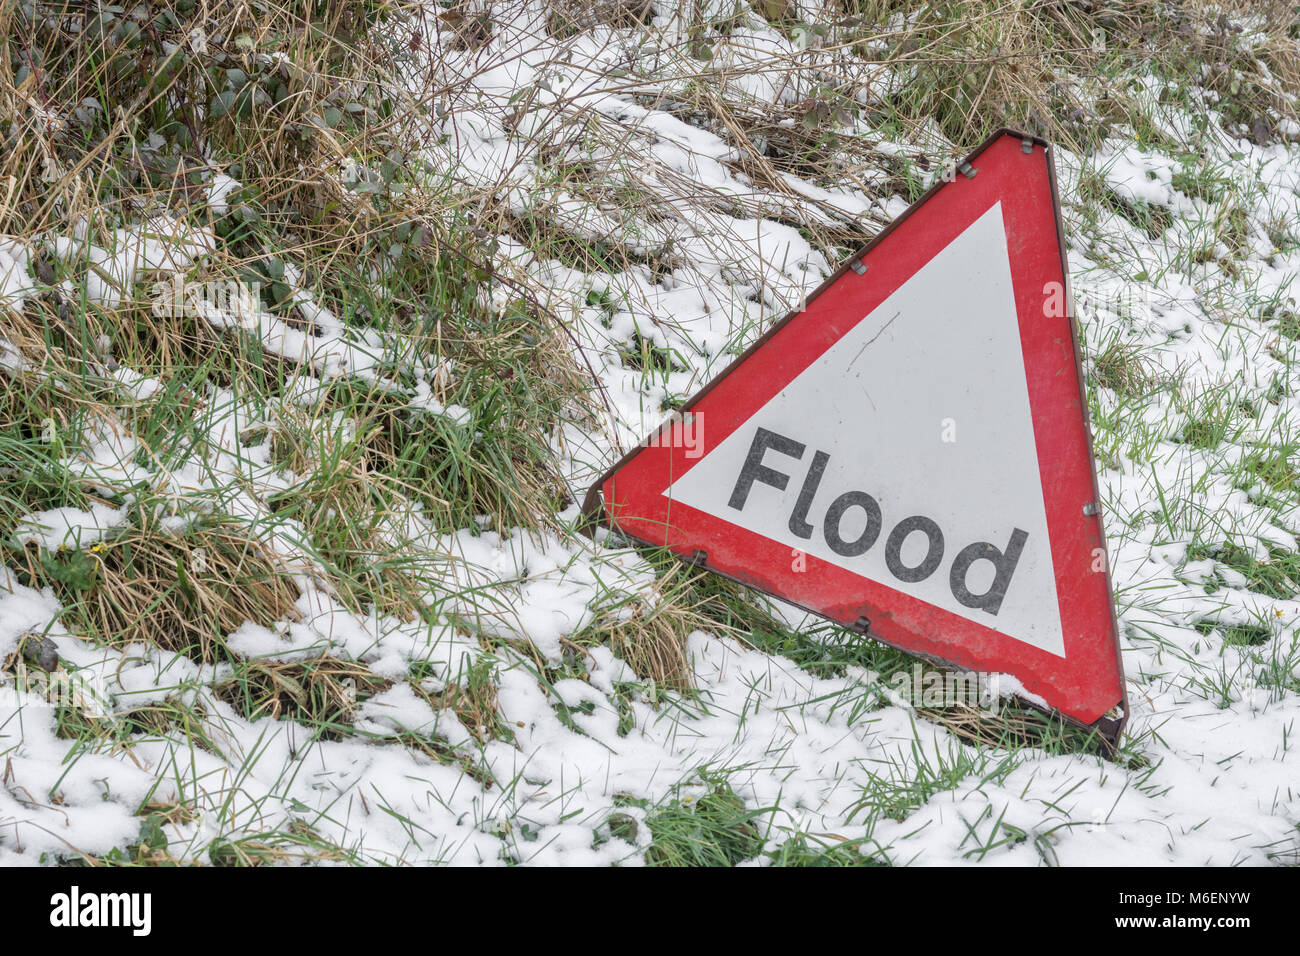 The anomaly of a red flood warning road sign during the snows of the 2018 'Beast from the East'  - in Lostwithiel, - Stock Image